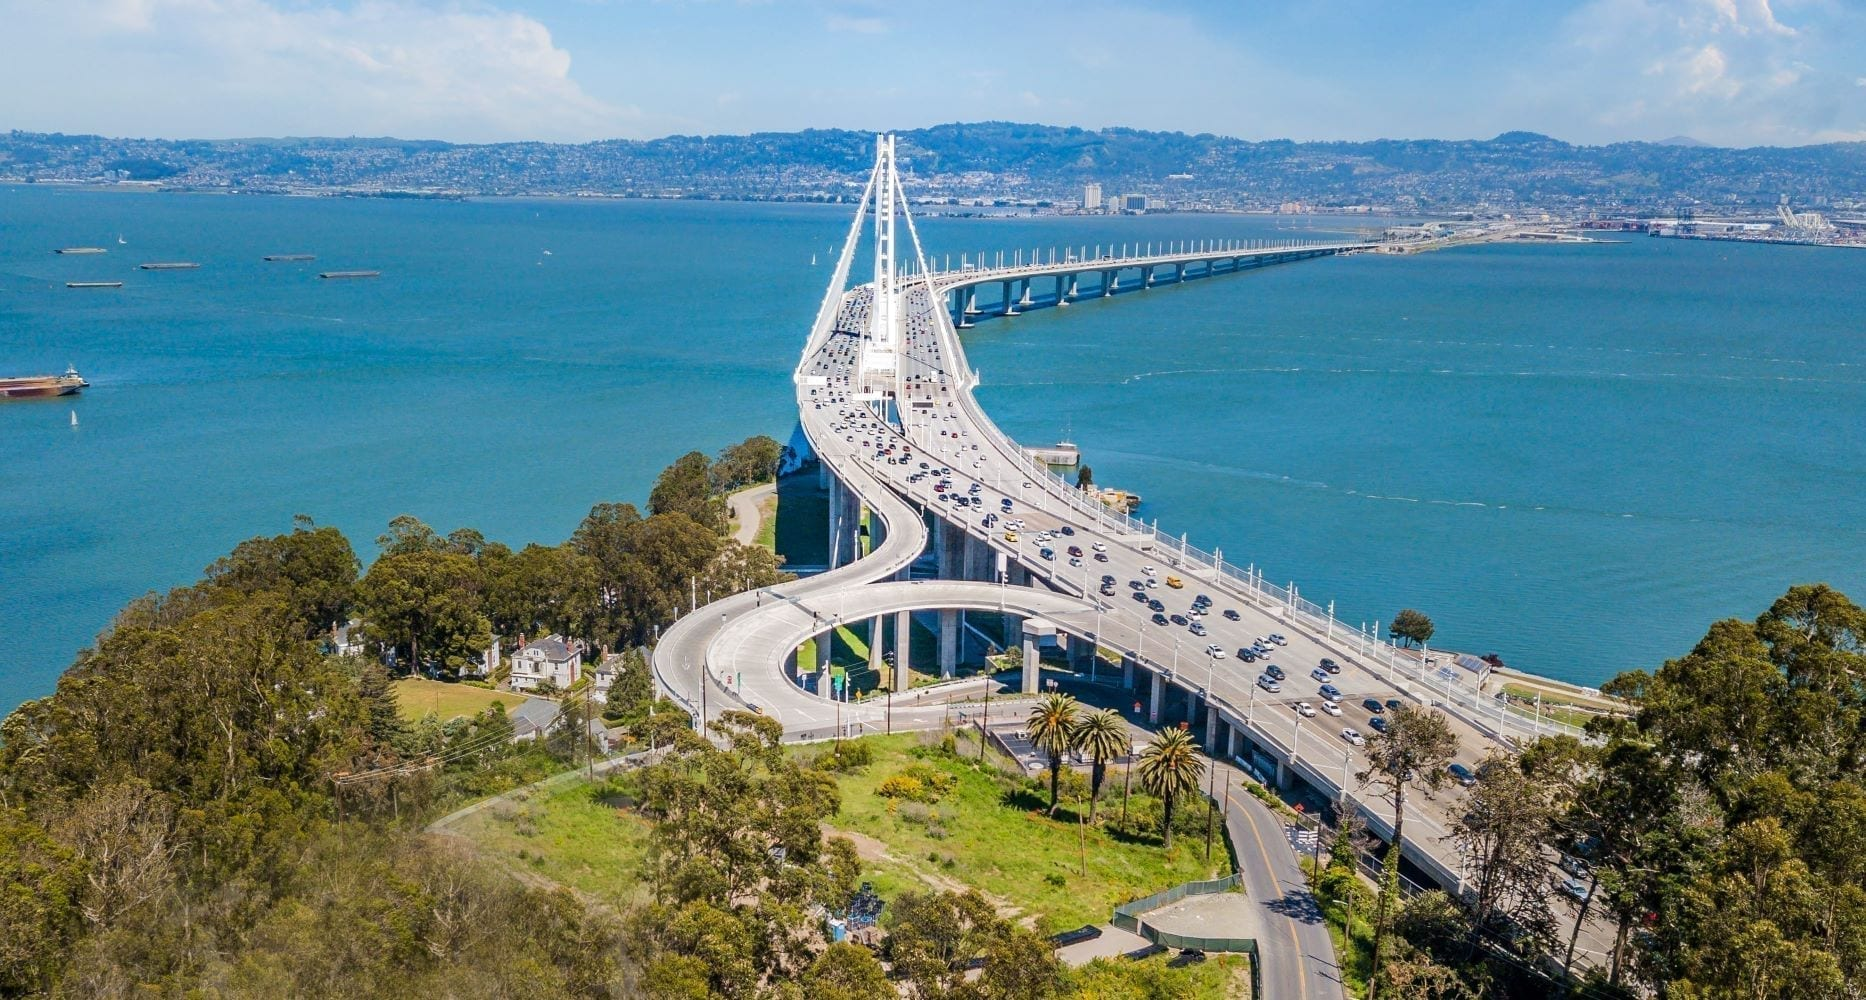 Moving In San Francisco Best Sf Bay Area Neighborhoods In The Suburbs 3,114 miles 5,012 kilometers of trail. best sf bay area neighborhoods in the